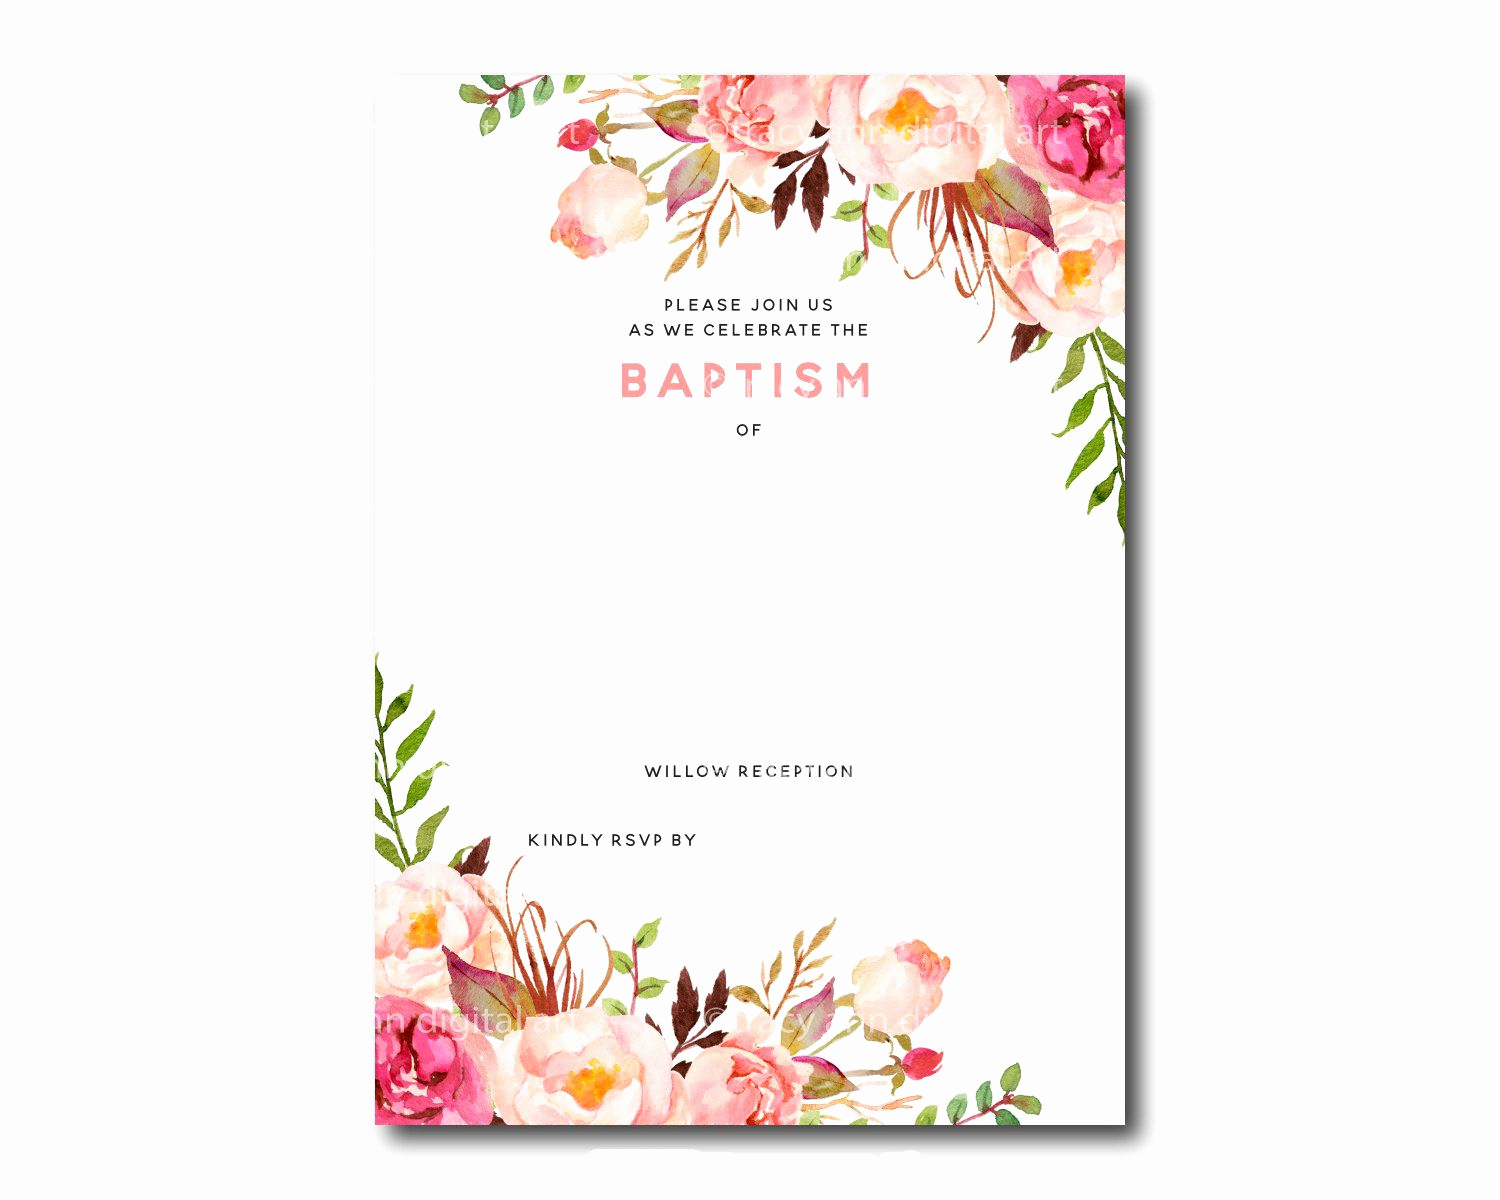 Free Printable Invitations Templates New Awesome Free Template Free Printable Baptism Floral